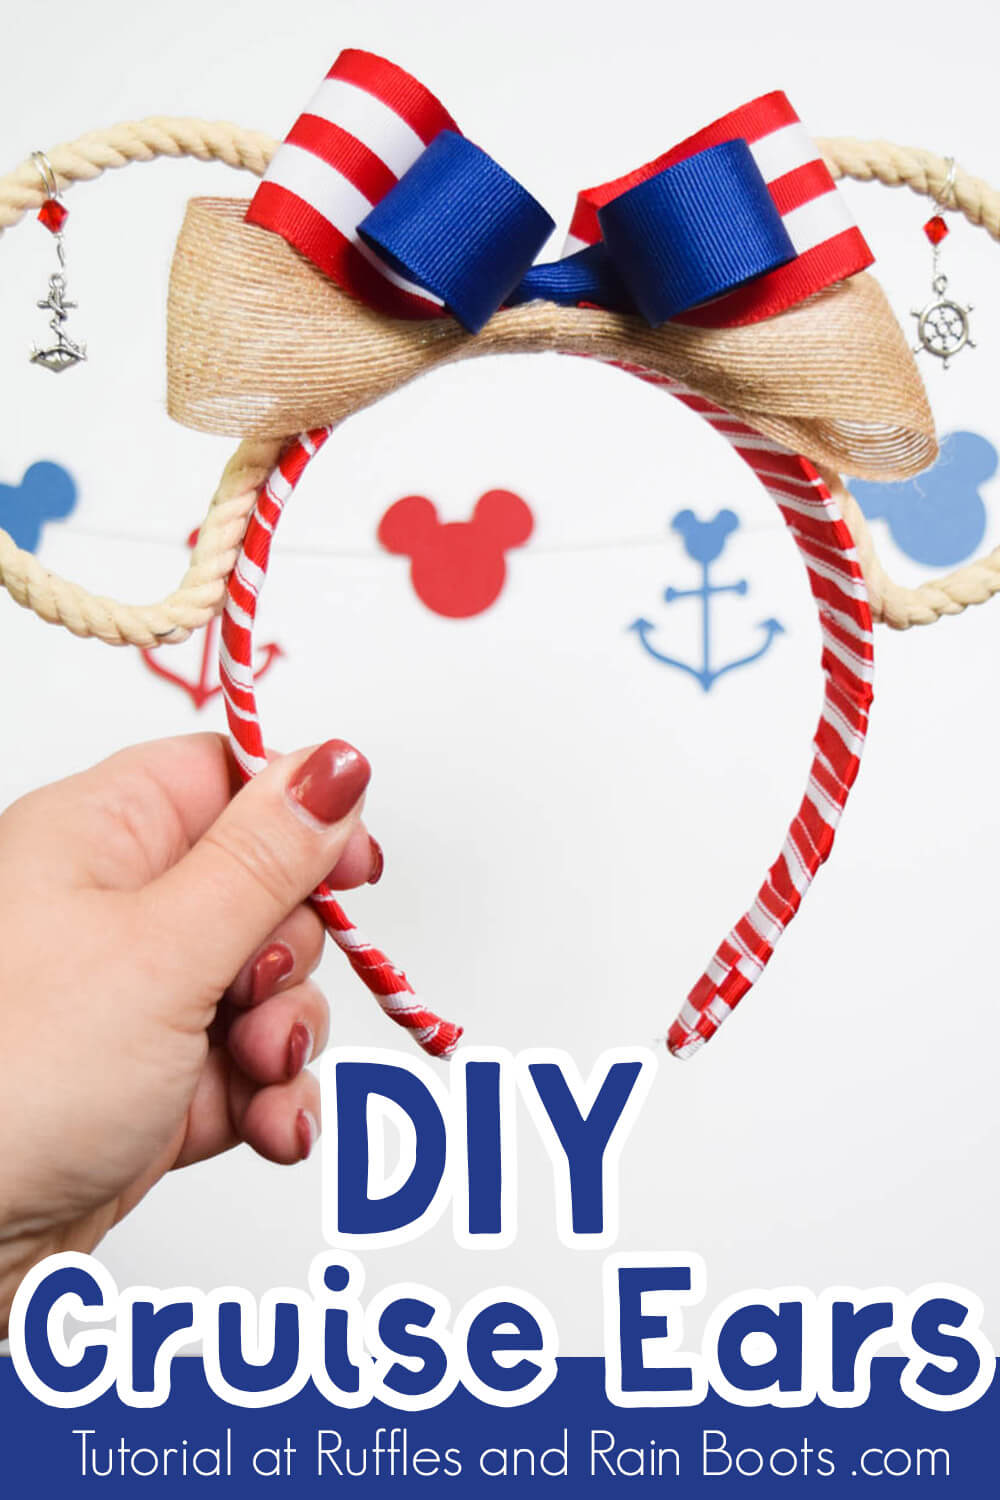 red white and blue rope Disney cruise ears on white background with cruise SVG cut outs